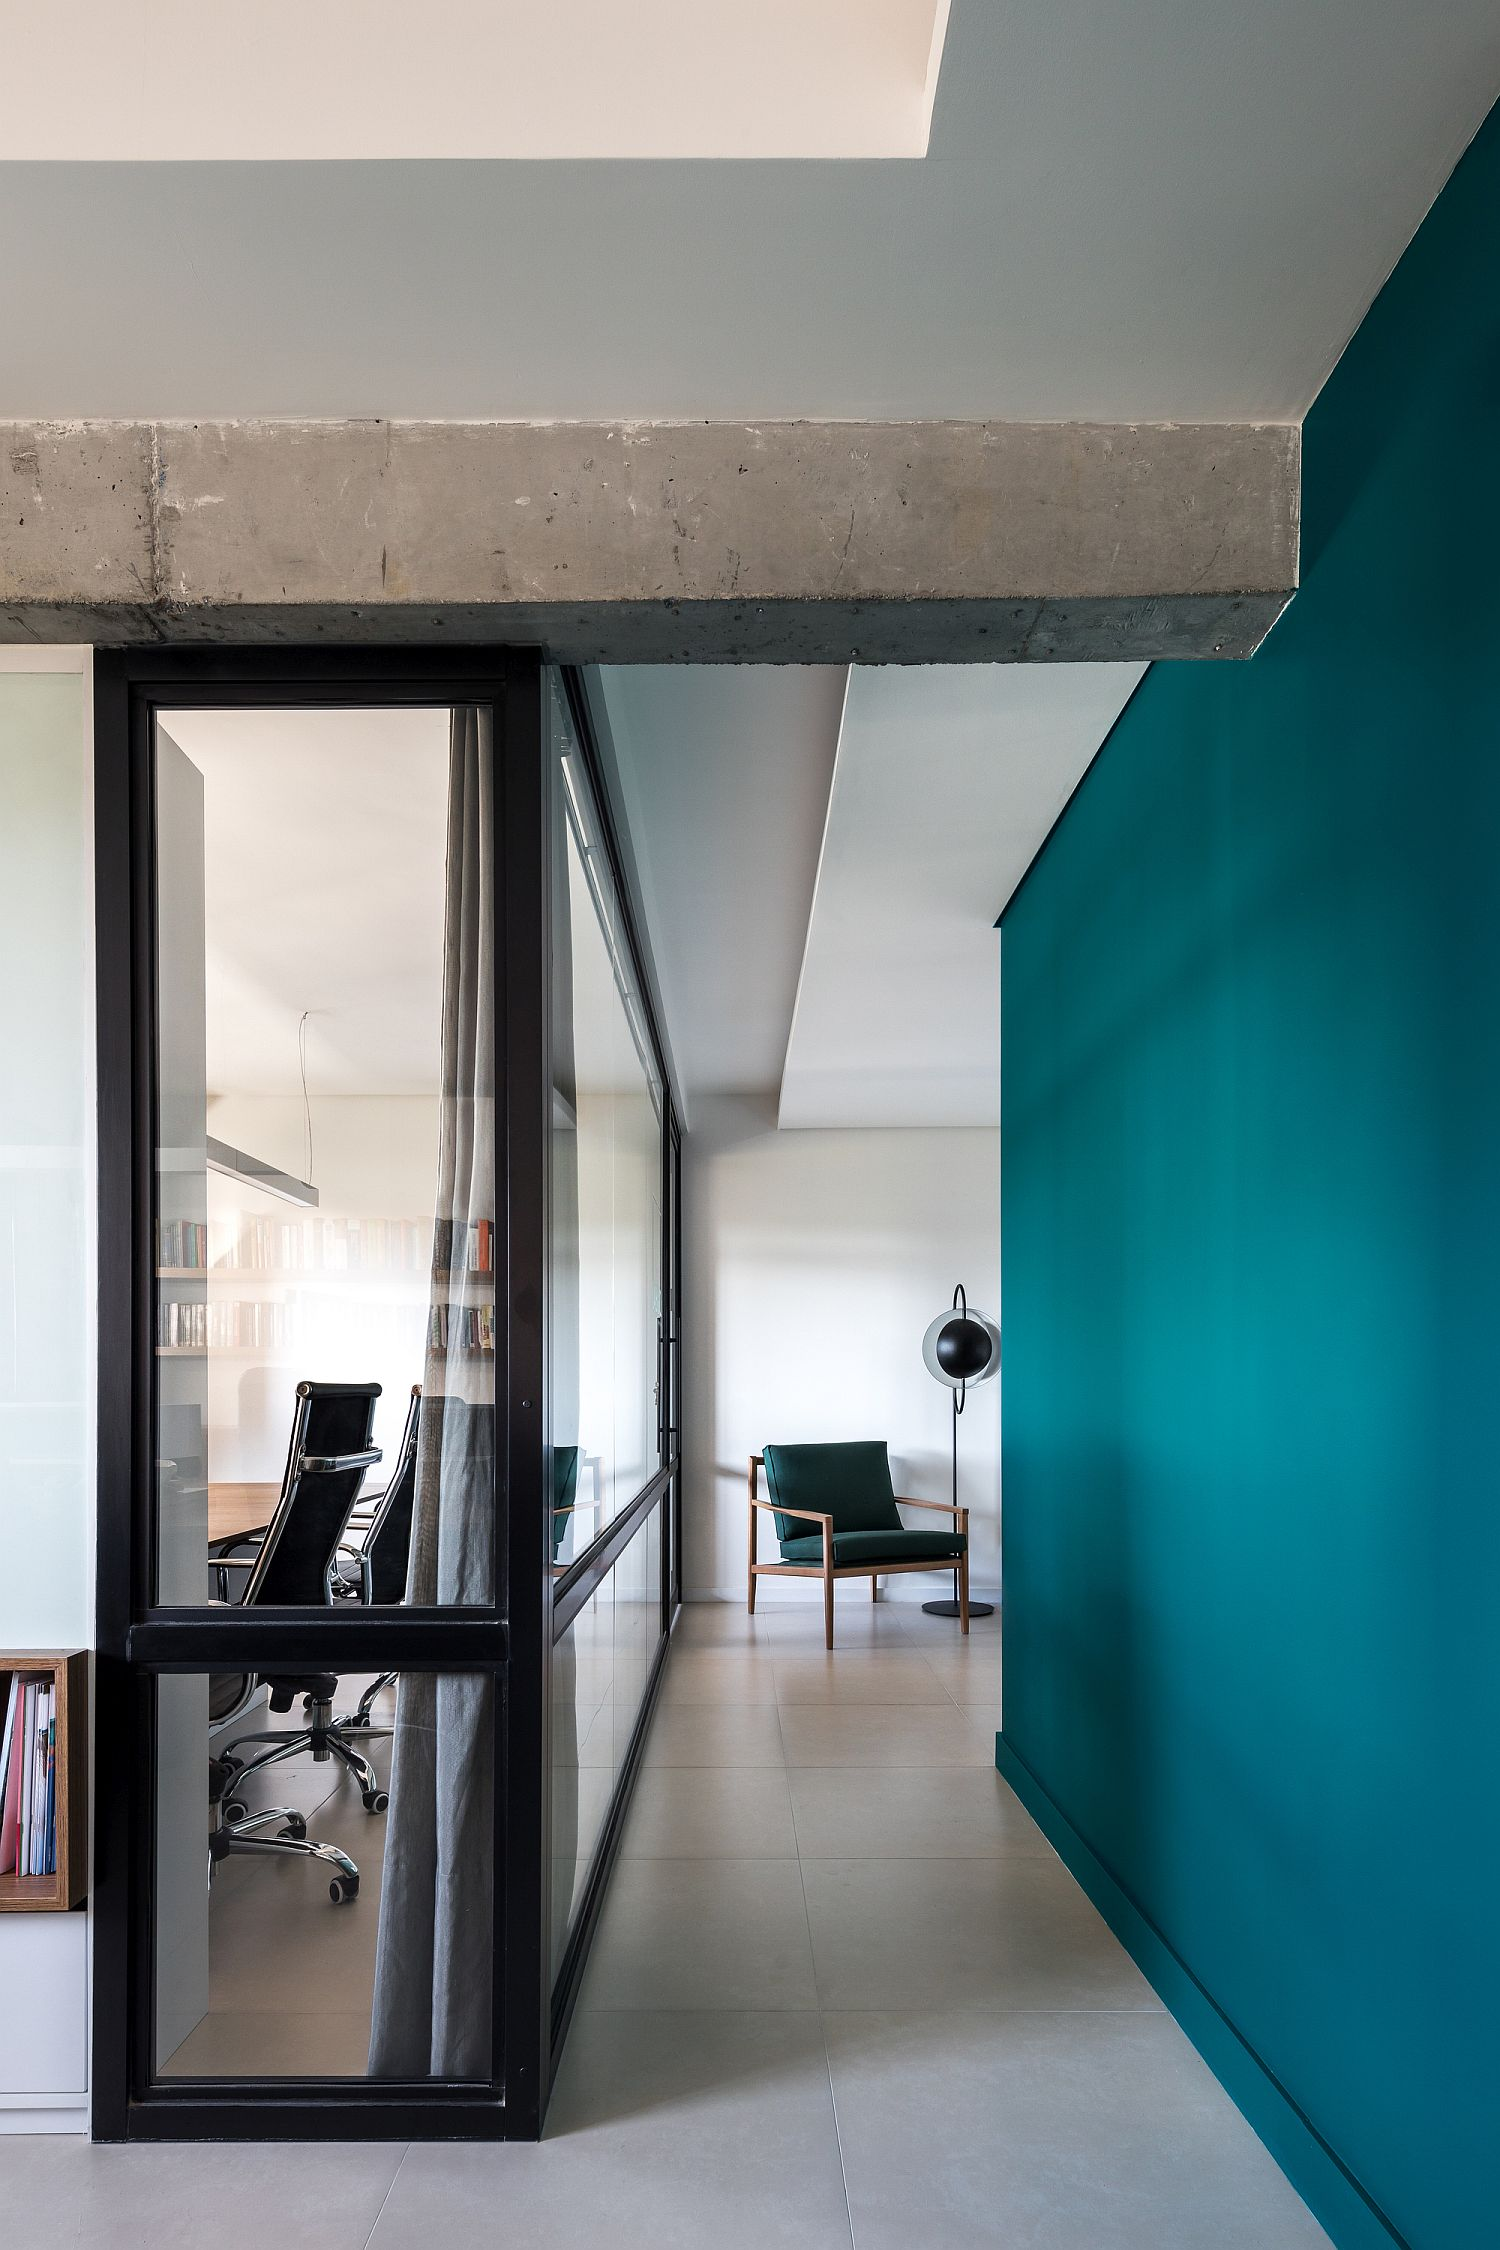 Framed glass walls bring in natural light while the dark green walls hold your attention